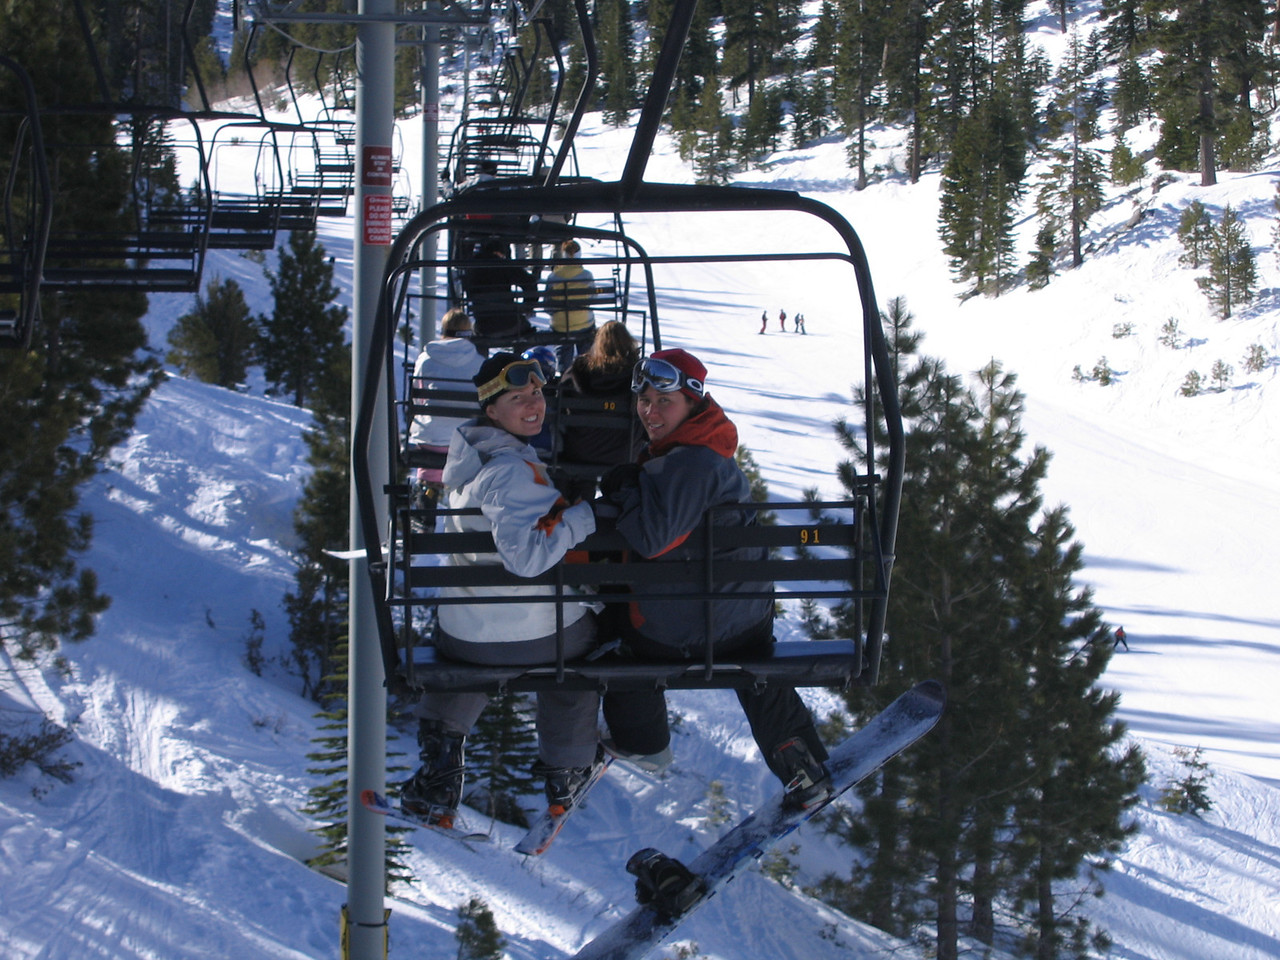 Carrie and Becky ride the lift at Heavenly.